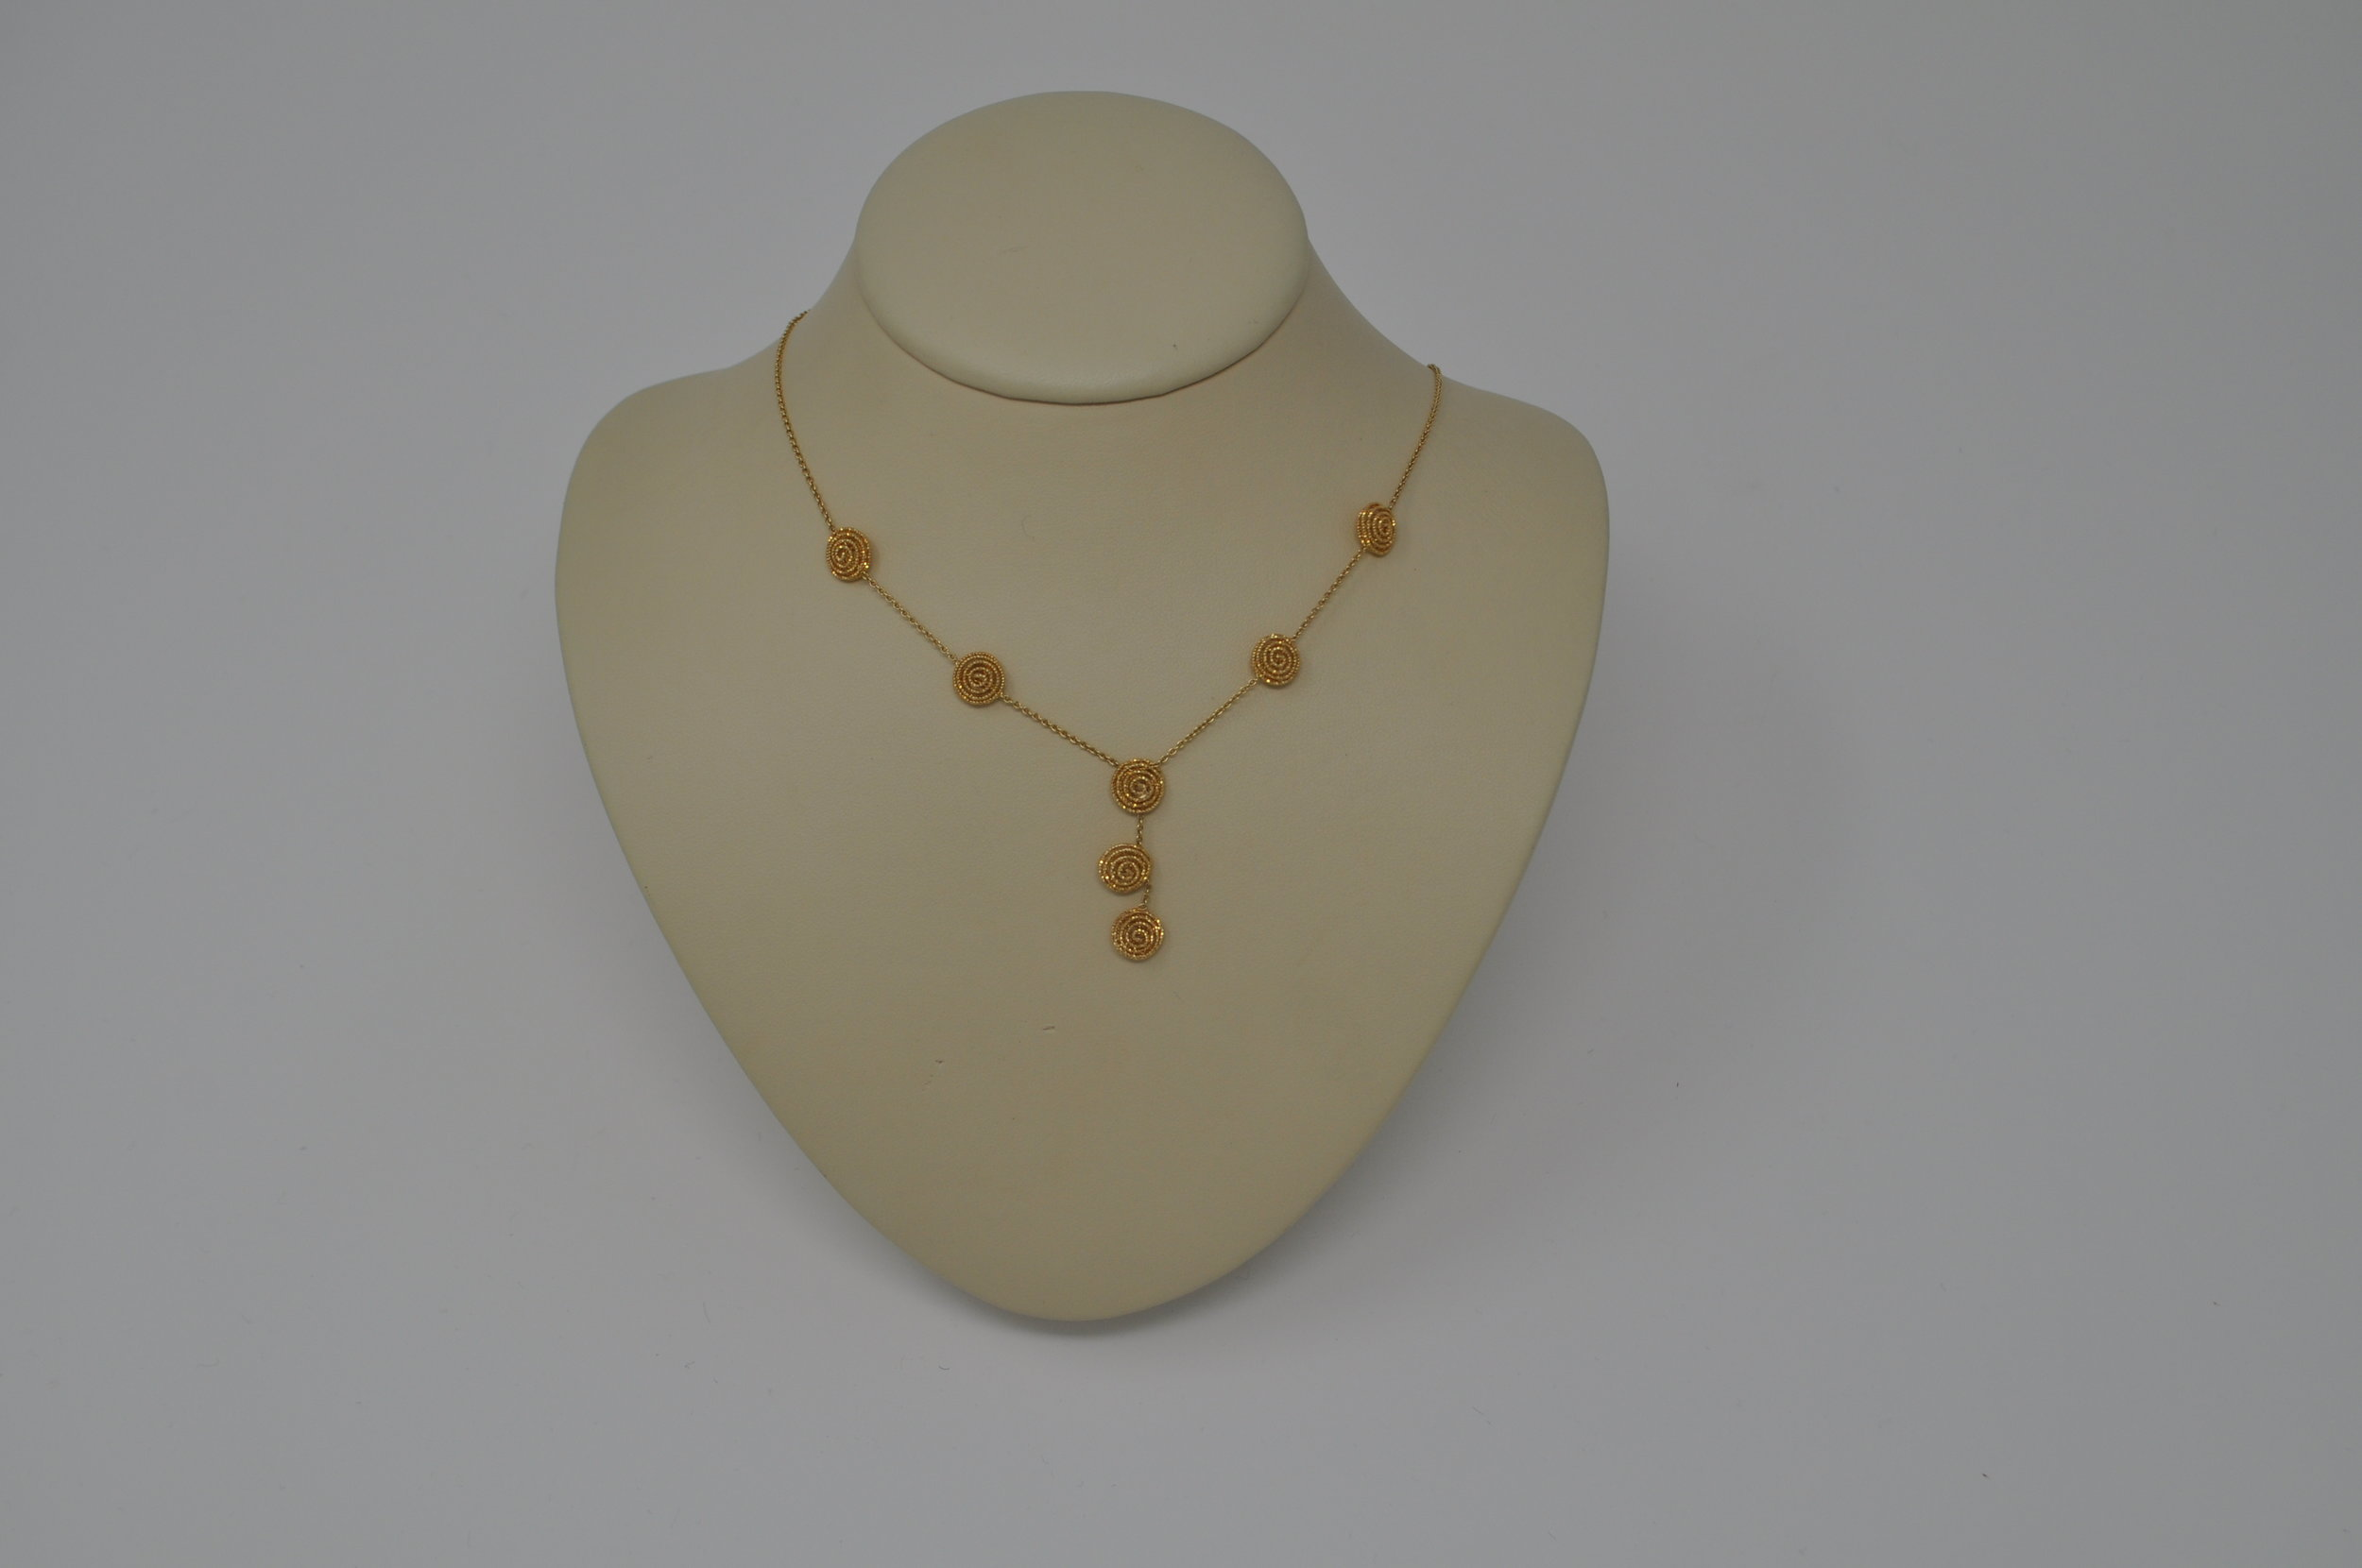 Necklace-Designed by Joseph Aviv this 14k gold necklace retail $1035.00    Saunders Lux Jeweler 7809 Jeffereson Hwy, Suite B-5 (in Bocage Village Shopping Center across from the entrance to Bocage Neighborhood).